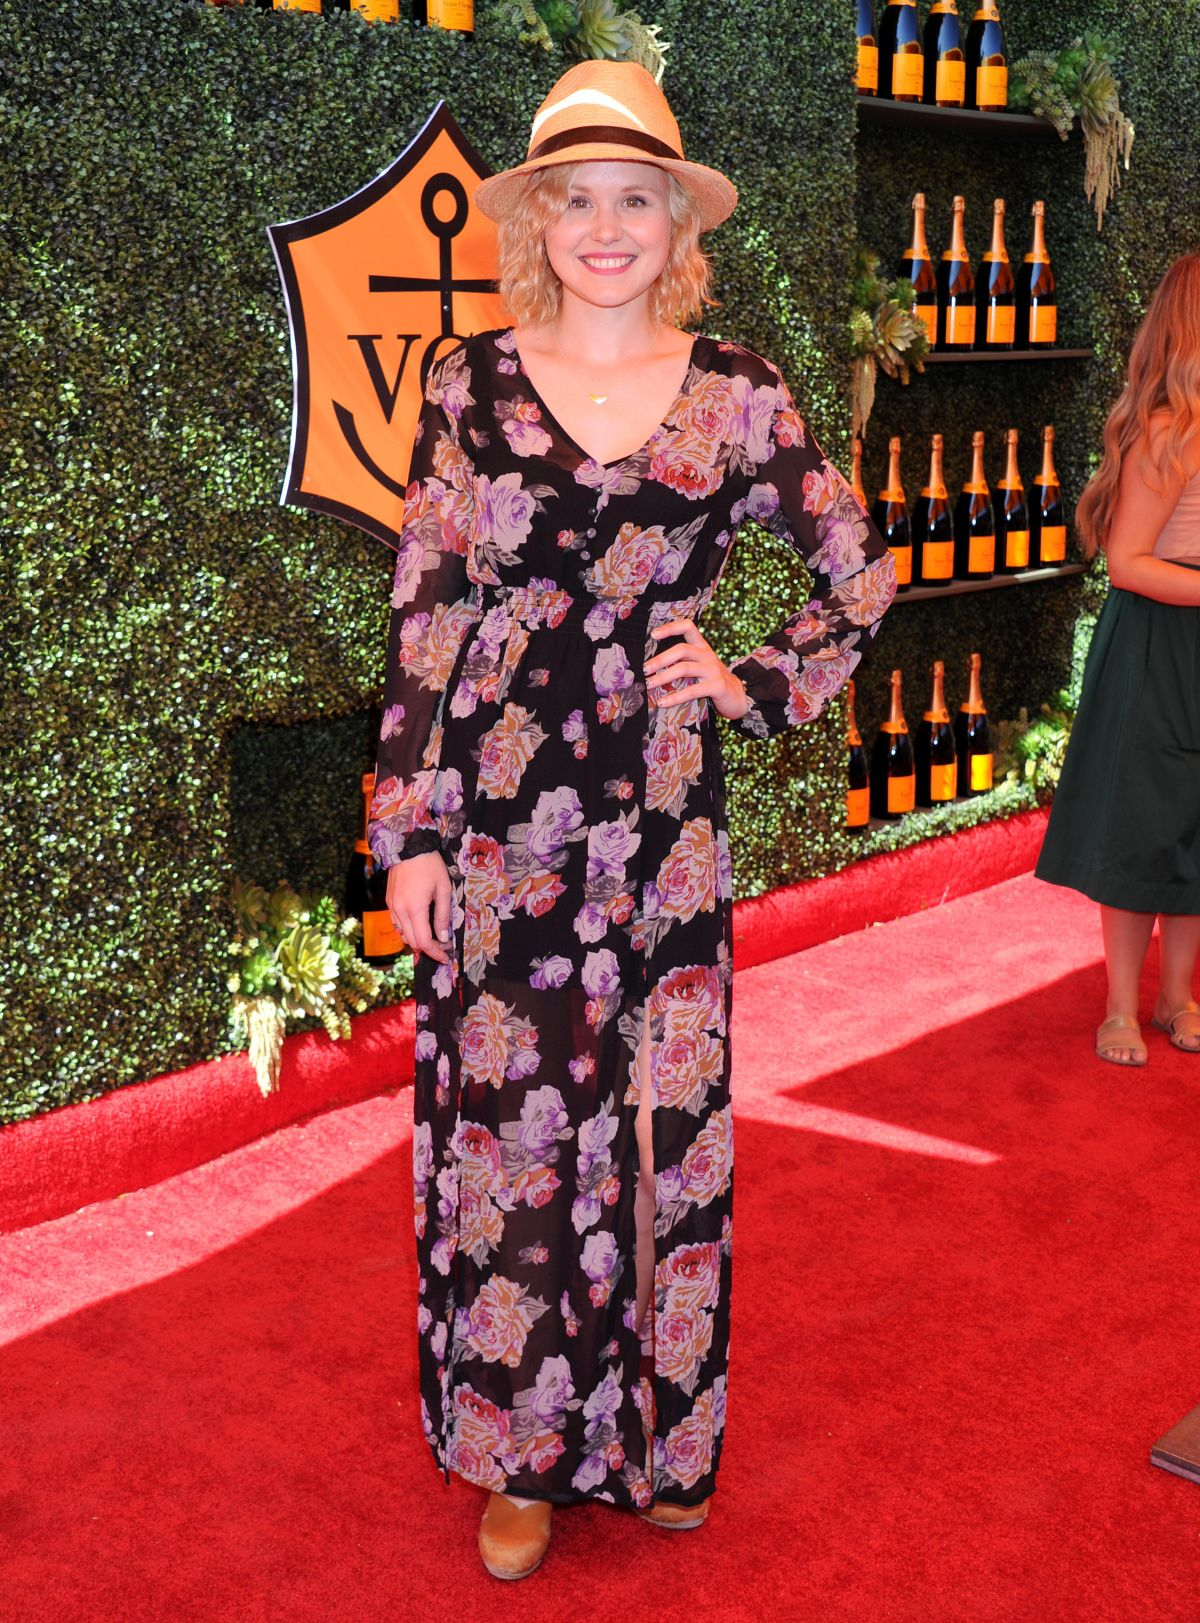 ALISON PILL at Veuve Clicquot Polo Classic 2014 in Los Angeles